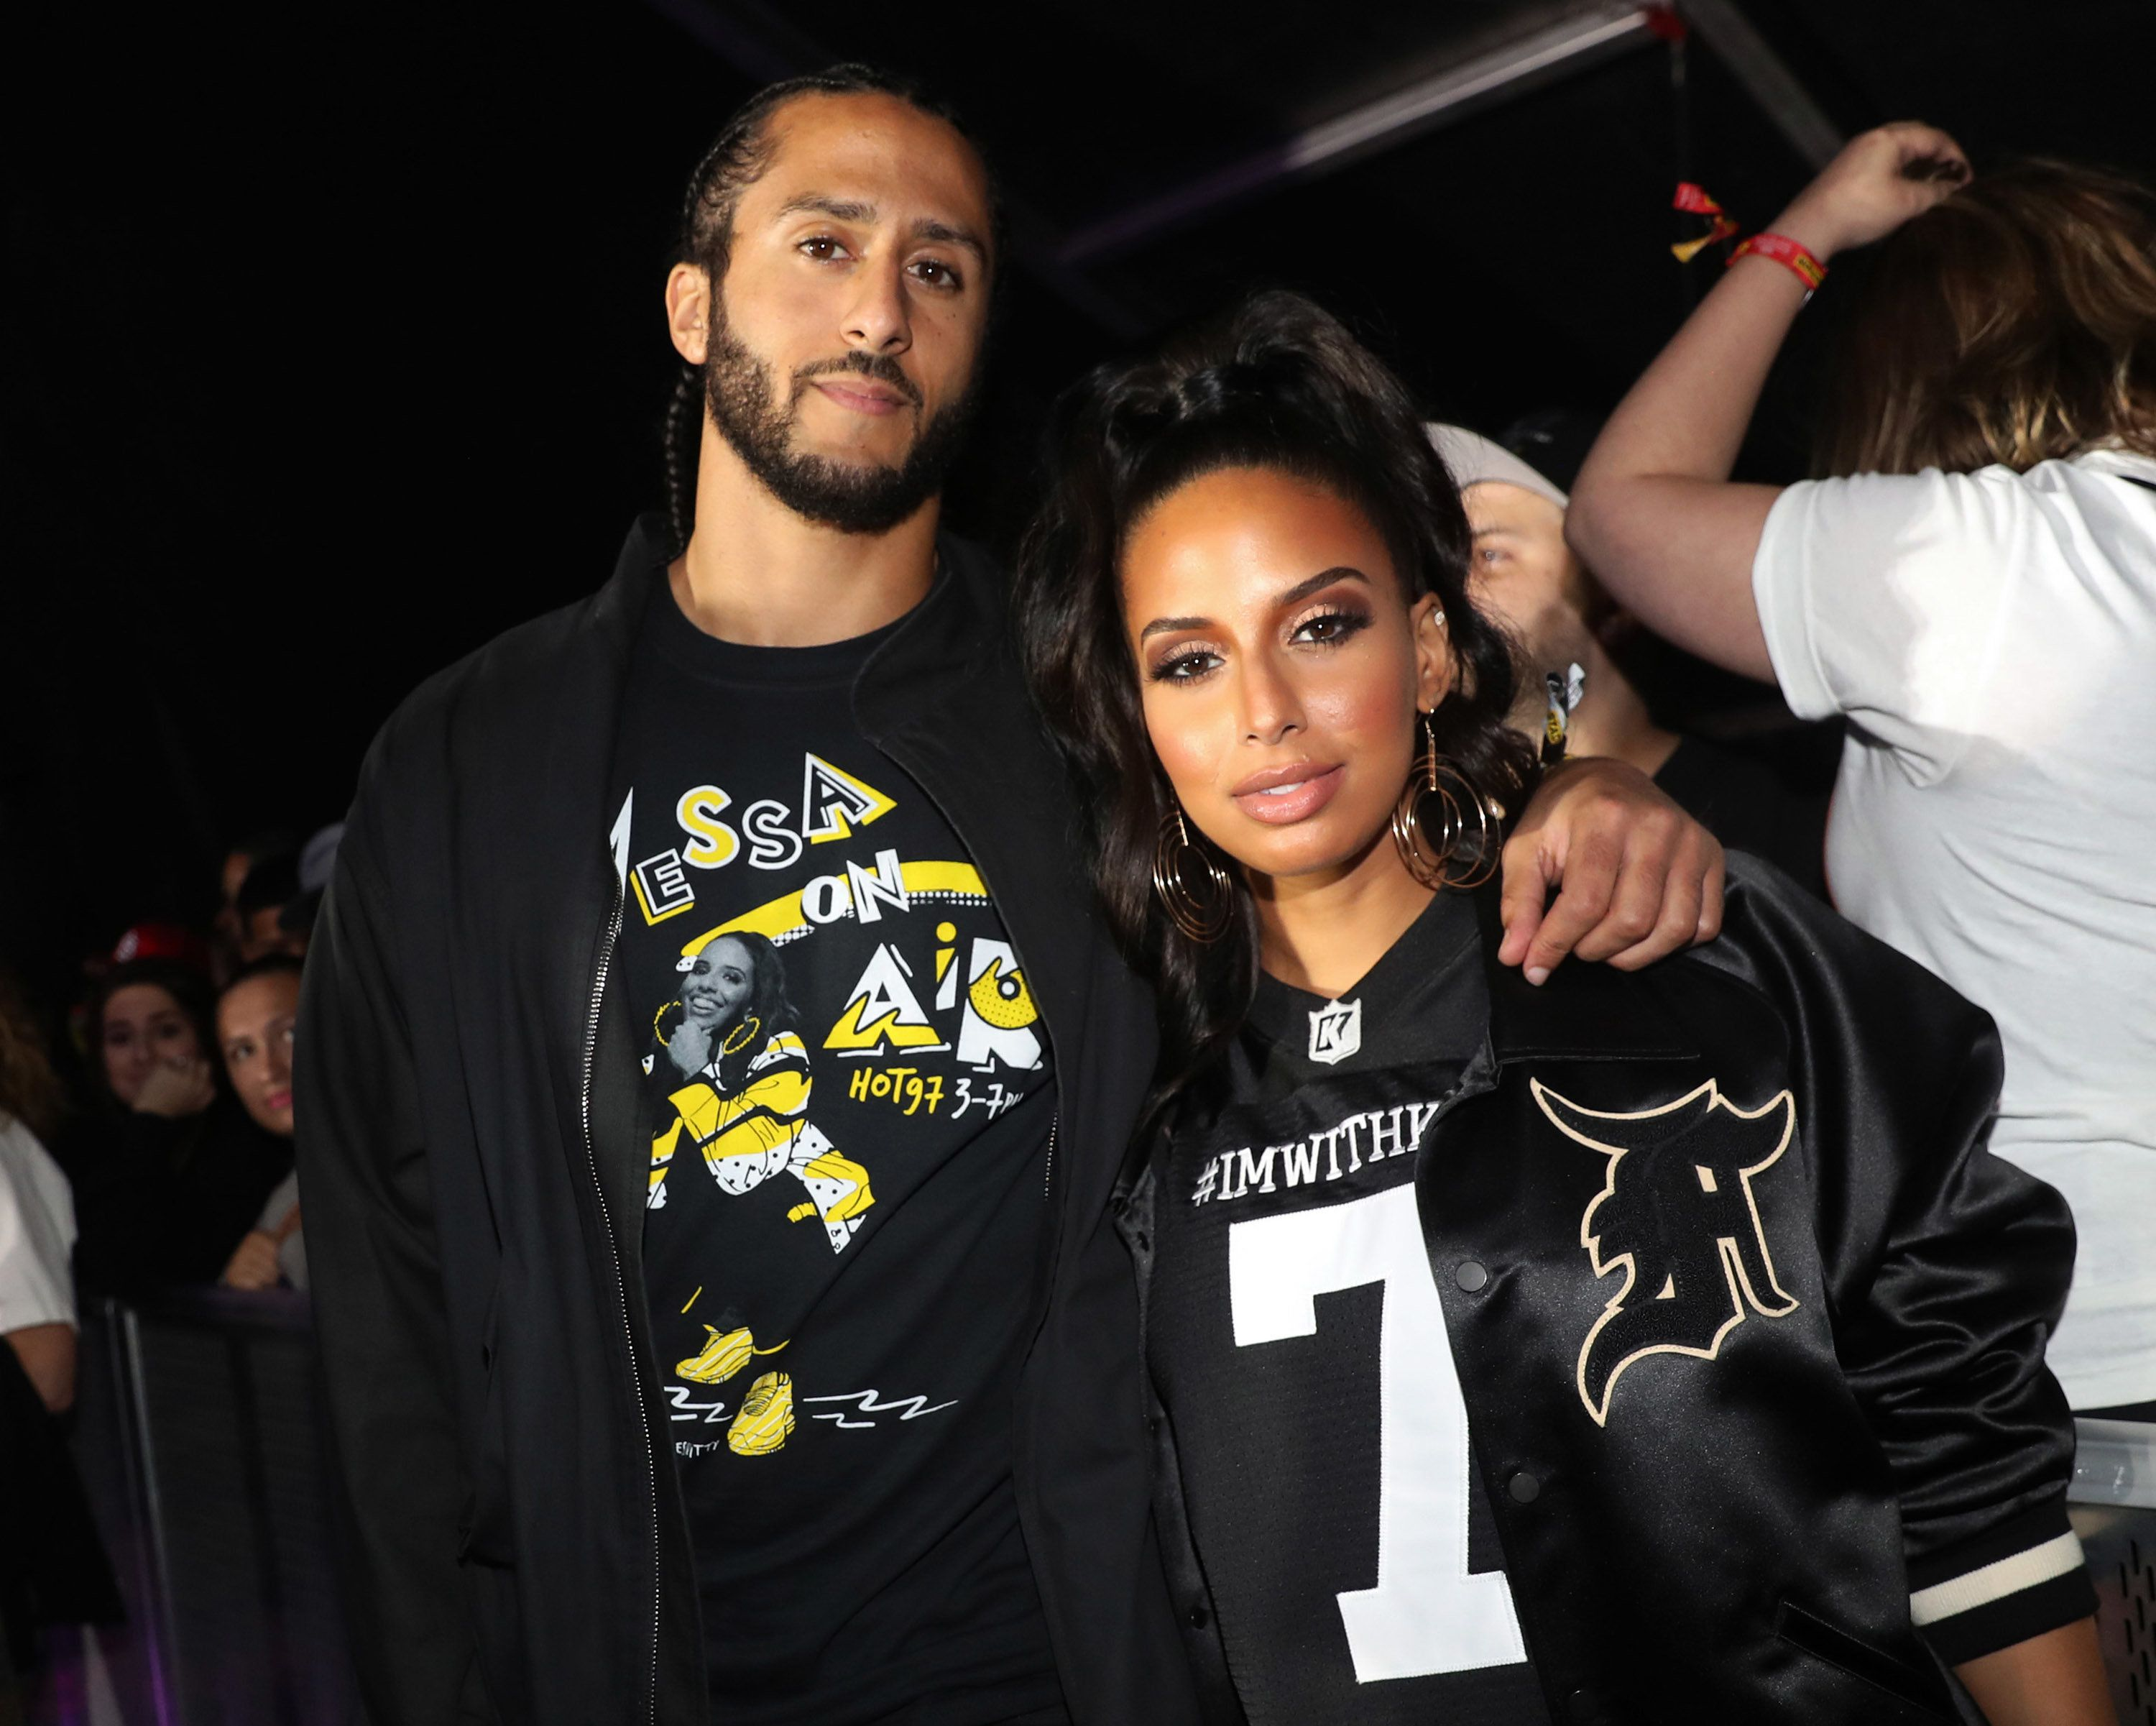 EAST RUTHERFORD, NJ - JUNE 10:  Colin Kaepernick (L) and Nessa attend Summer Jam 2018 at MetLife Stadium on June 10, 2018 in East Rutherford, New Jersey.  (Photo by Johnny Nunez/WireImage)